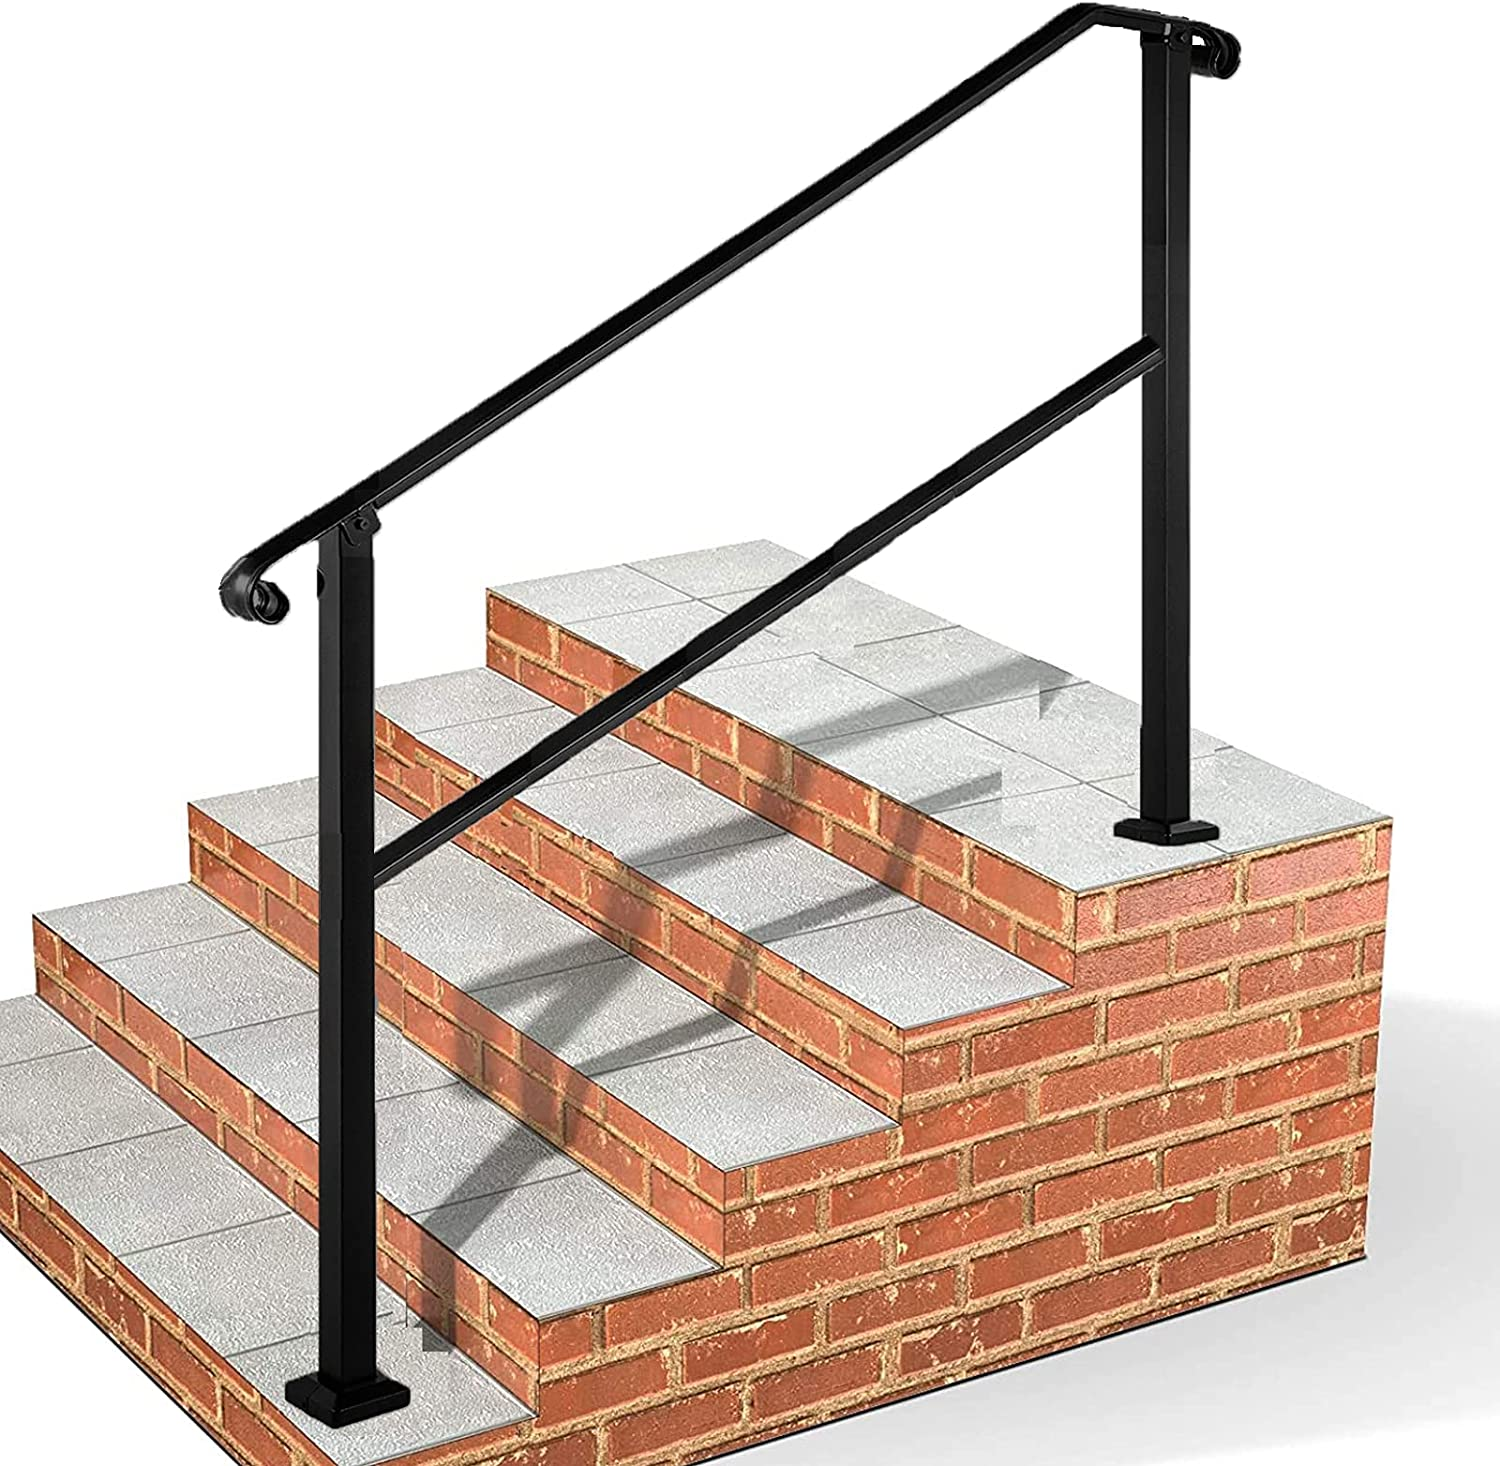 Buy Outdoor Stair Railing,Black Wrought Iron Handrail,20 Step ...